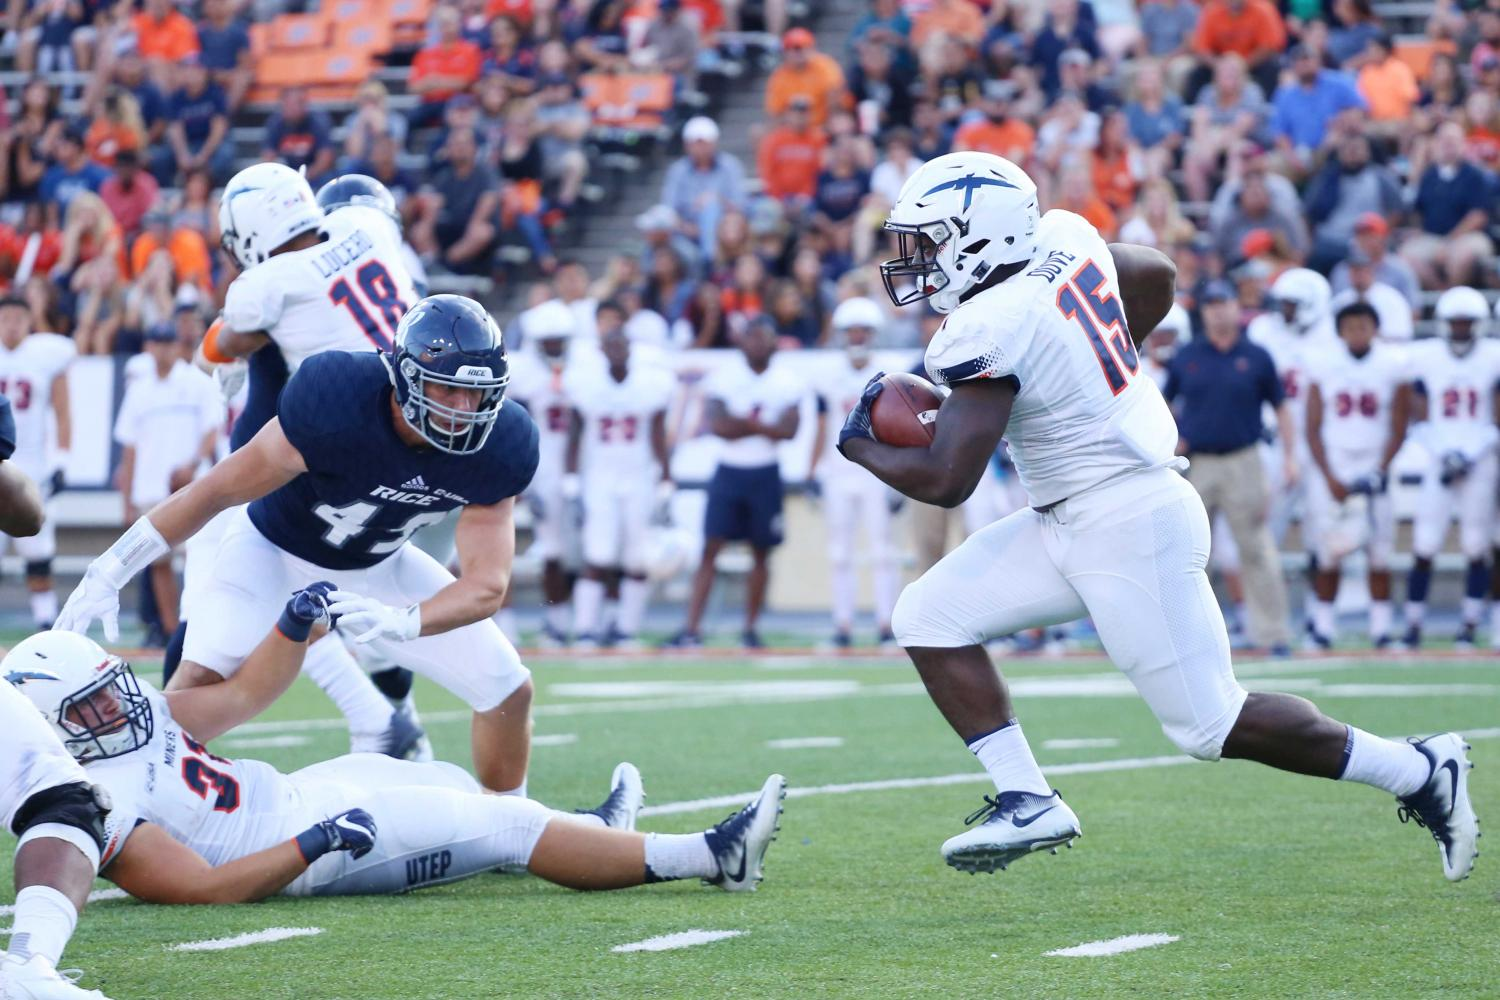 UTEP+running+back+Kevin+Dove+will+use+his+family%E2%80%99s+losses+in+storm+as+the+motivation+the+rest+of+the+season.